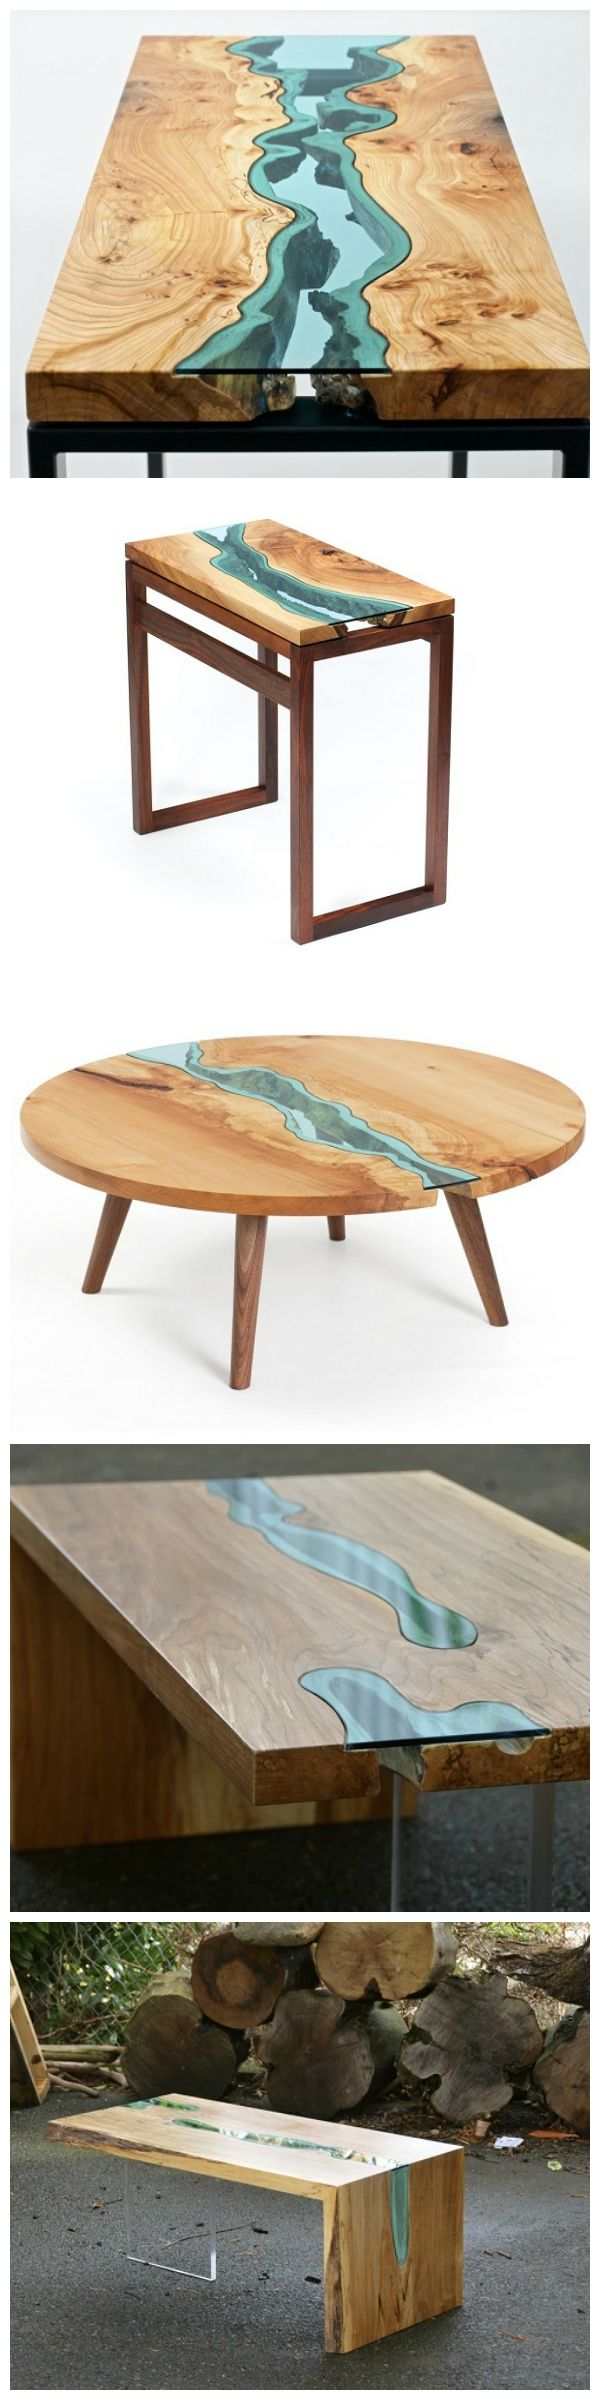 Wood Tables Embedded with Glass Rivers By Greg Klassen